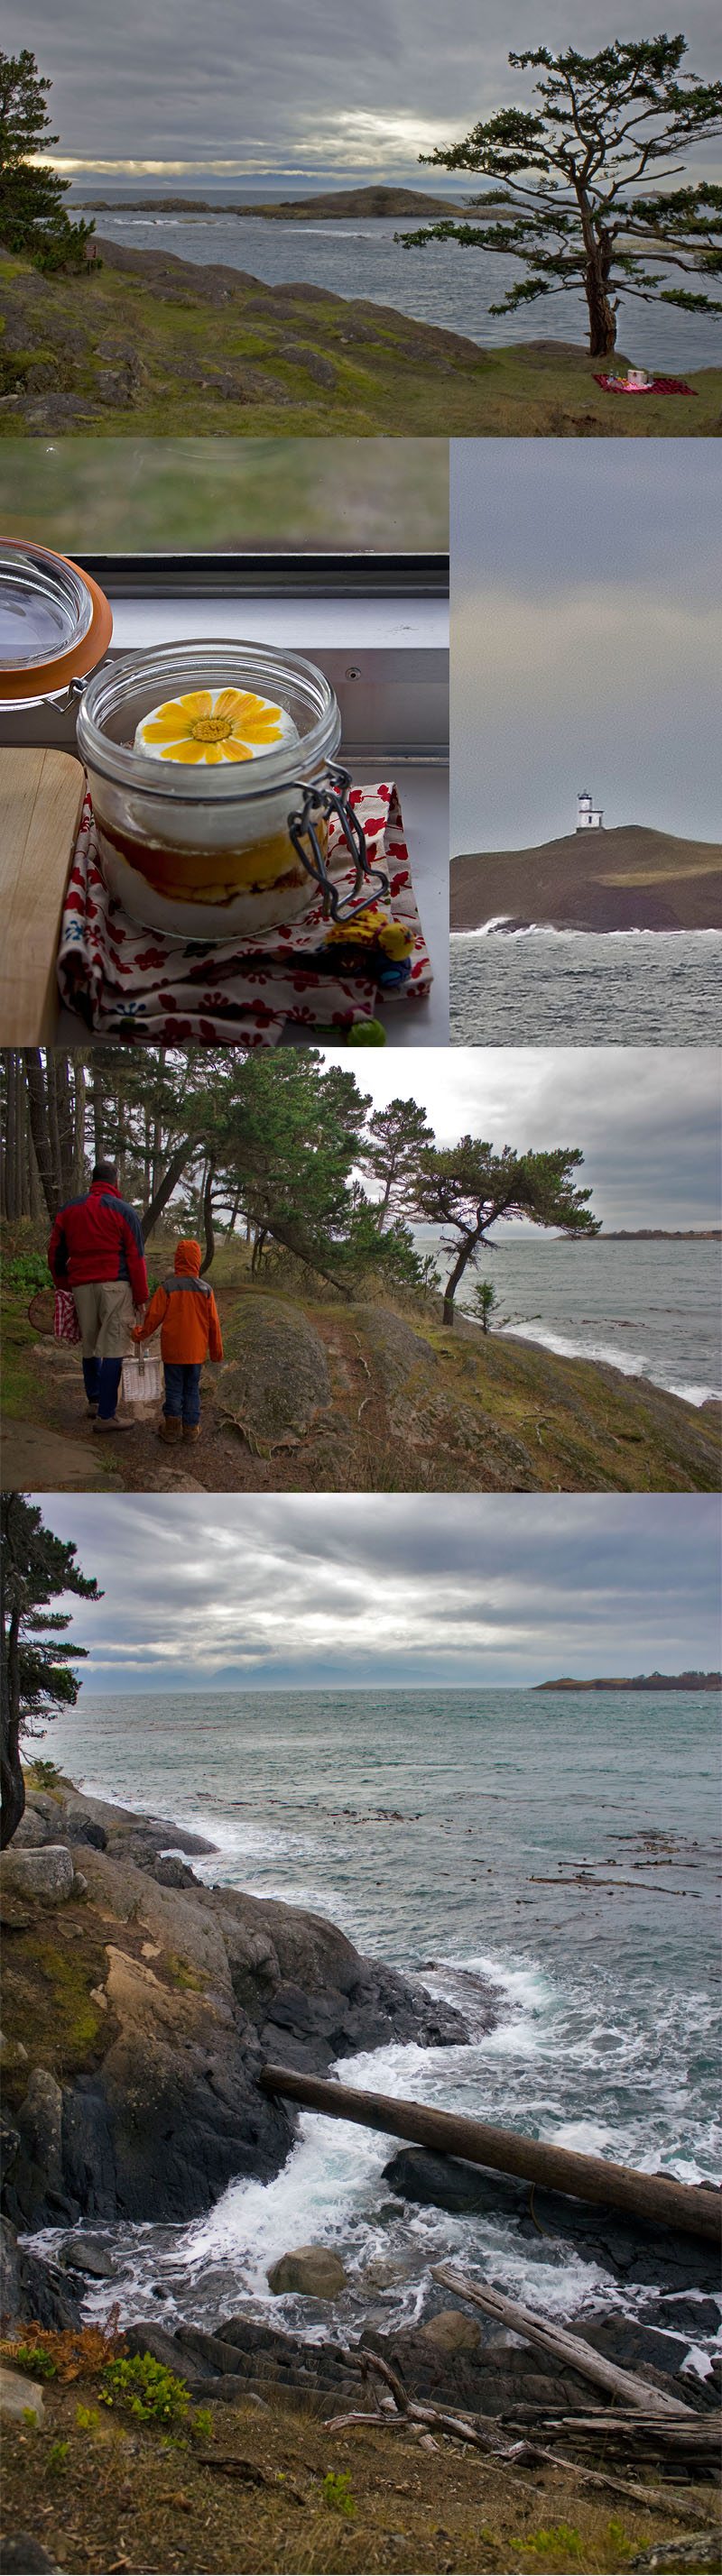 Picnic with a view at Shark Reef Cove, Lopez Island, WA State